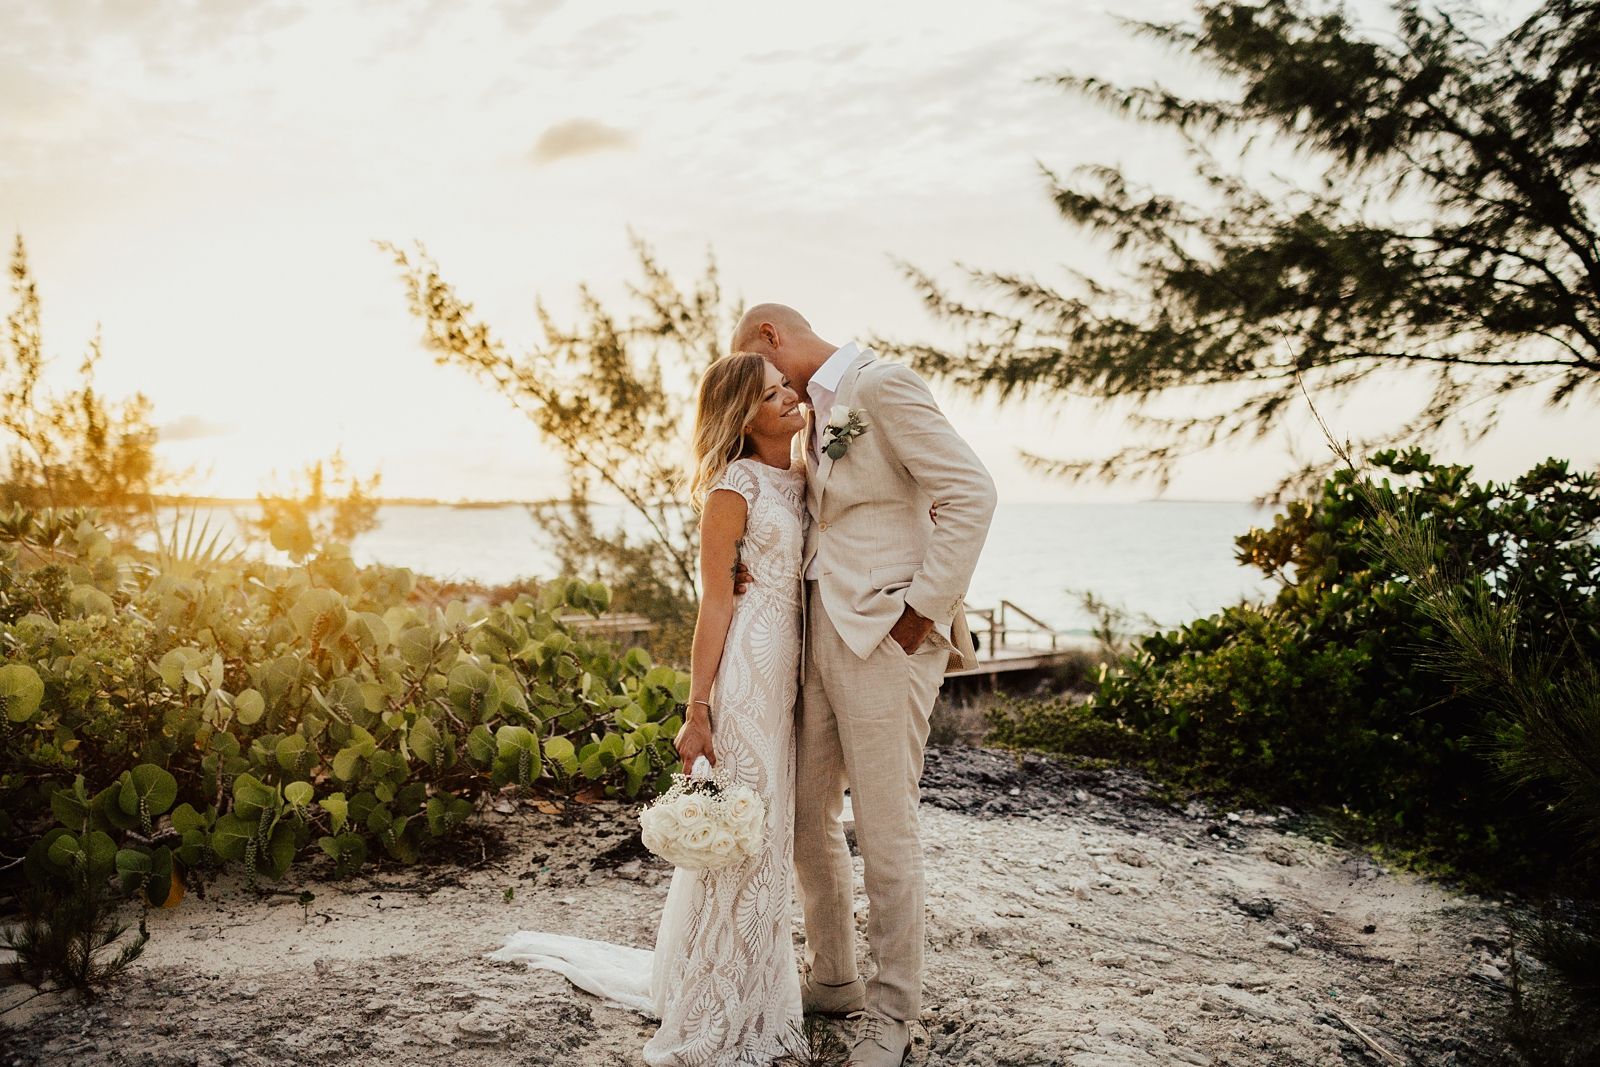 Jenni & Andrew Intimate Beach Destination Wedding in Little Exuma, Bahamas_0524.jpg